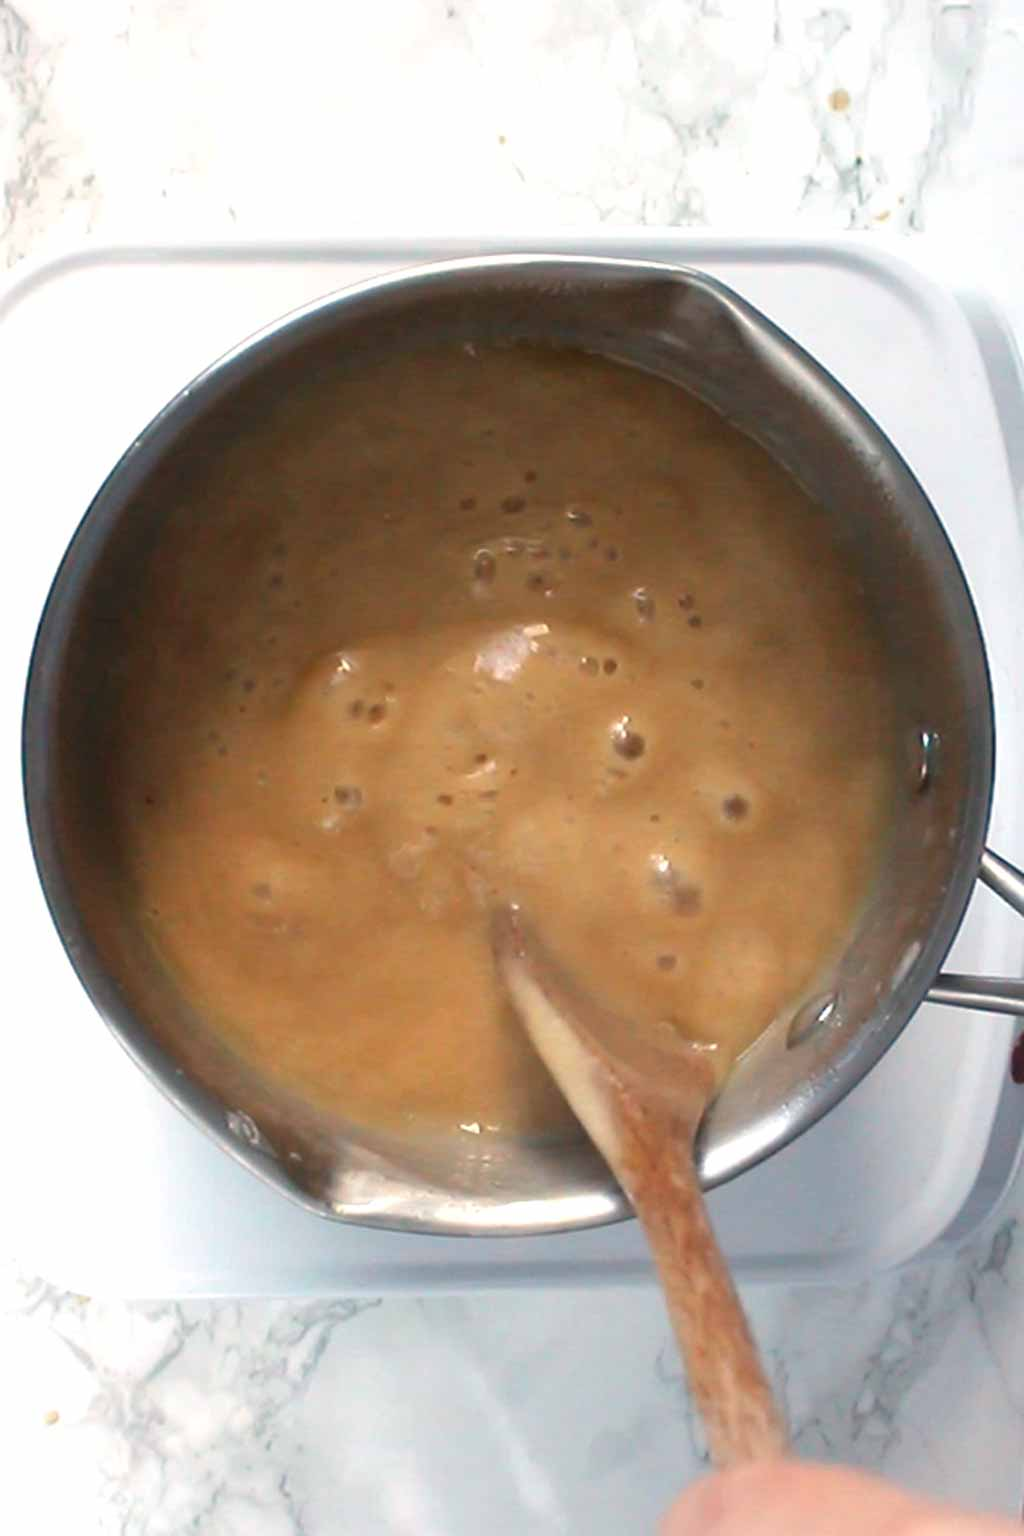 Caramel Bubbling on the stove